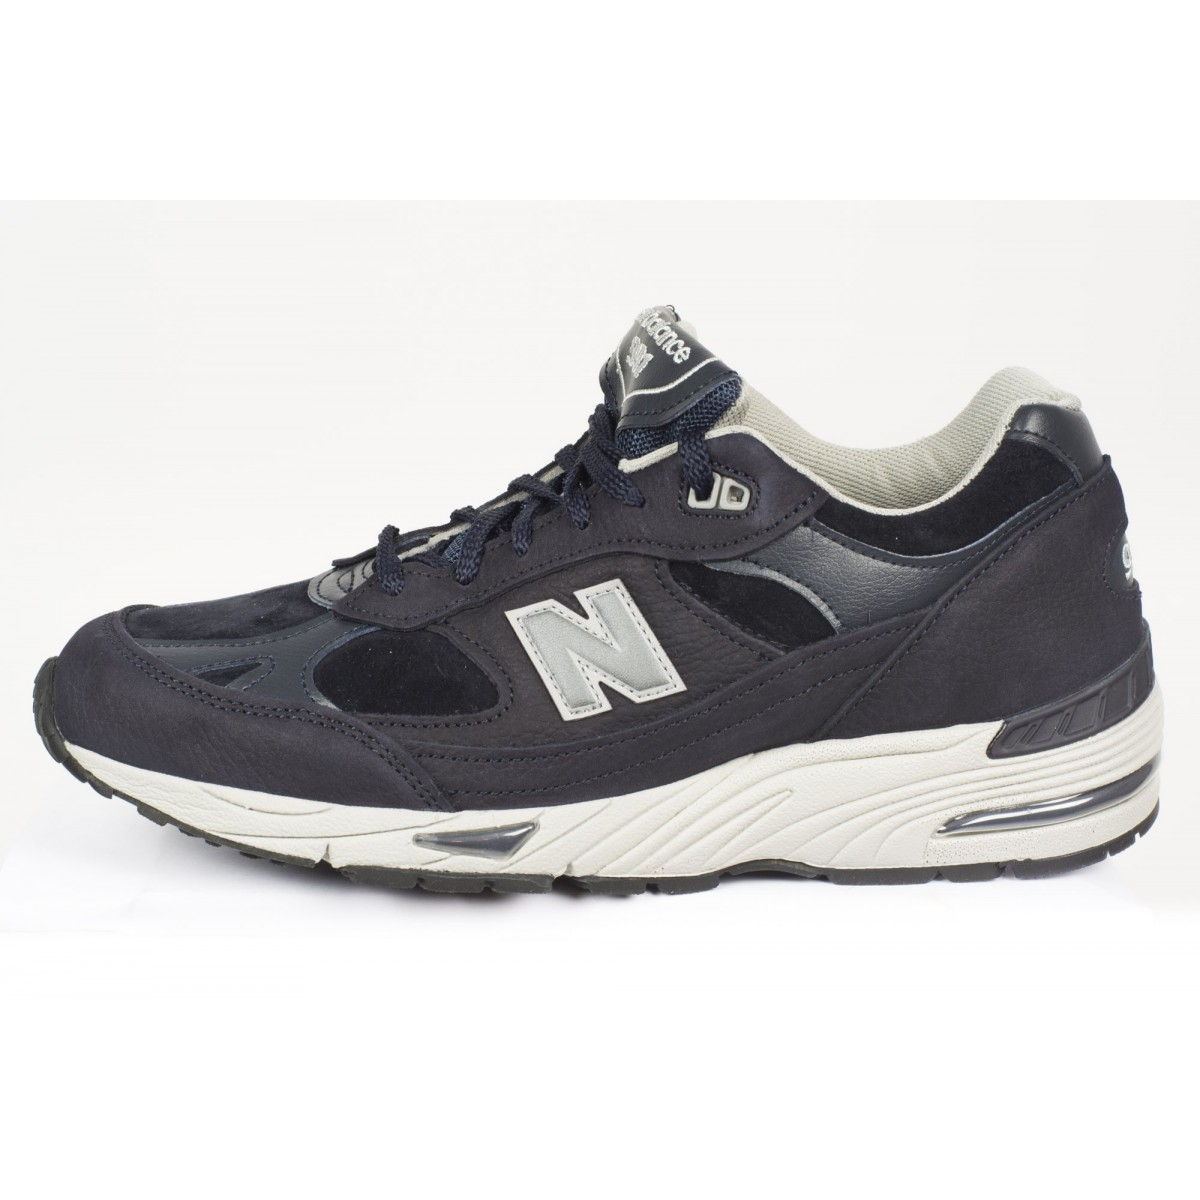 Scarpa New balance - 991 nabuk made in uk NPN - Navy